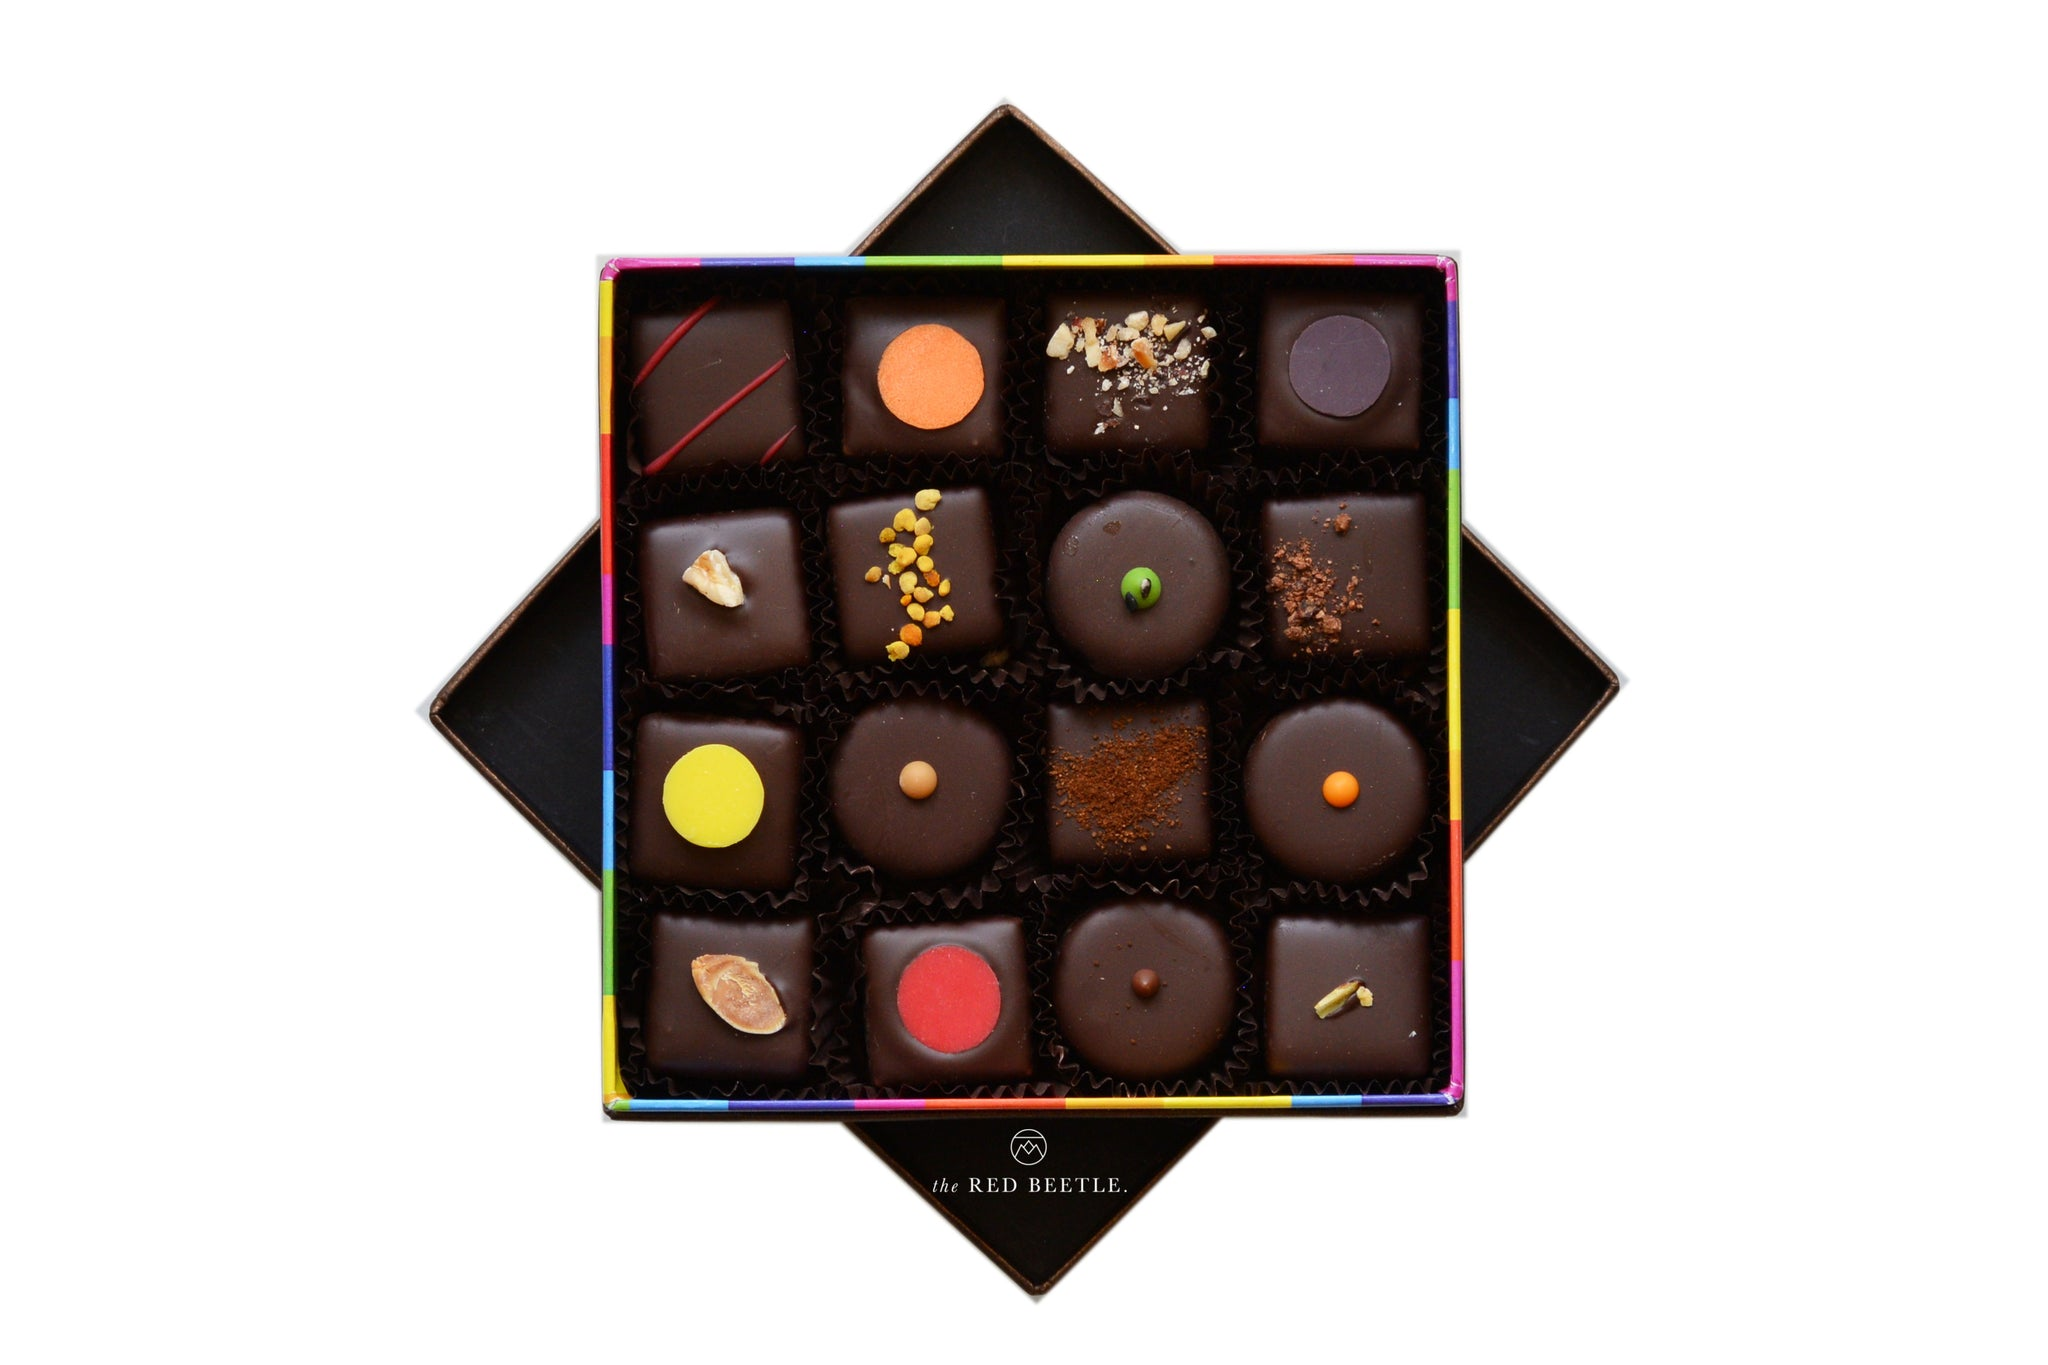 Enrico Rizzi Box of 16 Chocolate Pralines Handmade in Milan